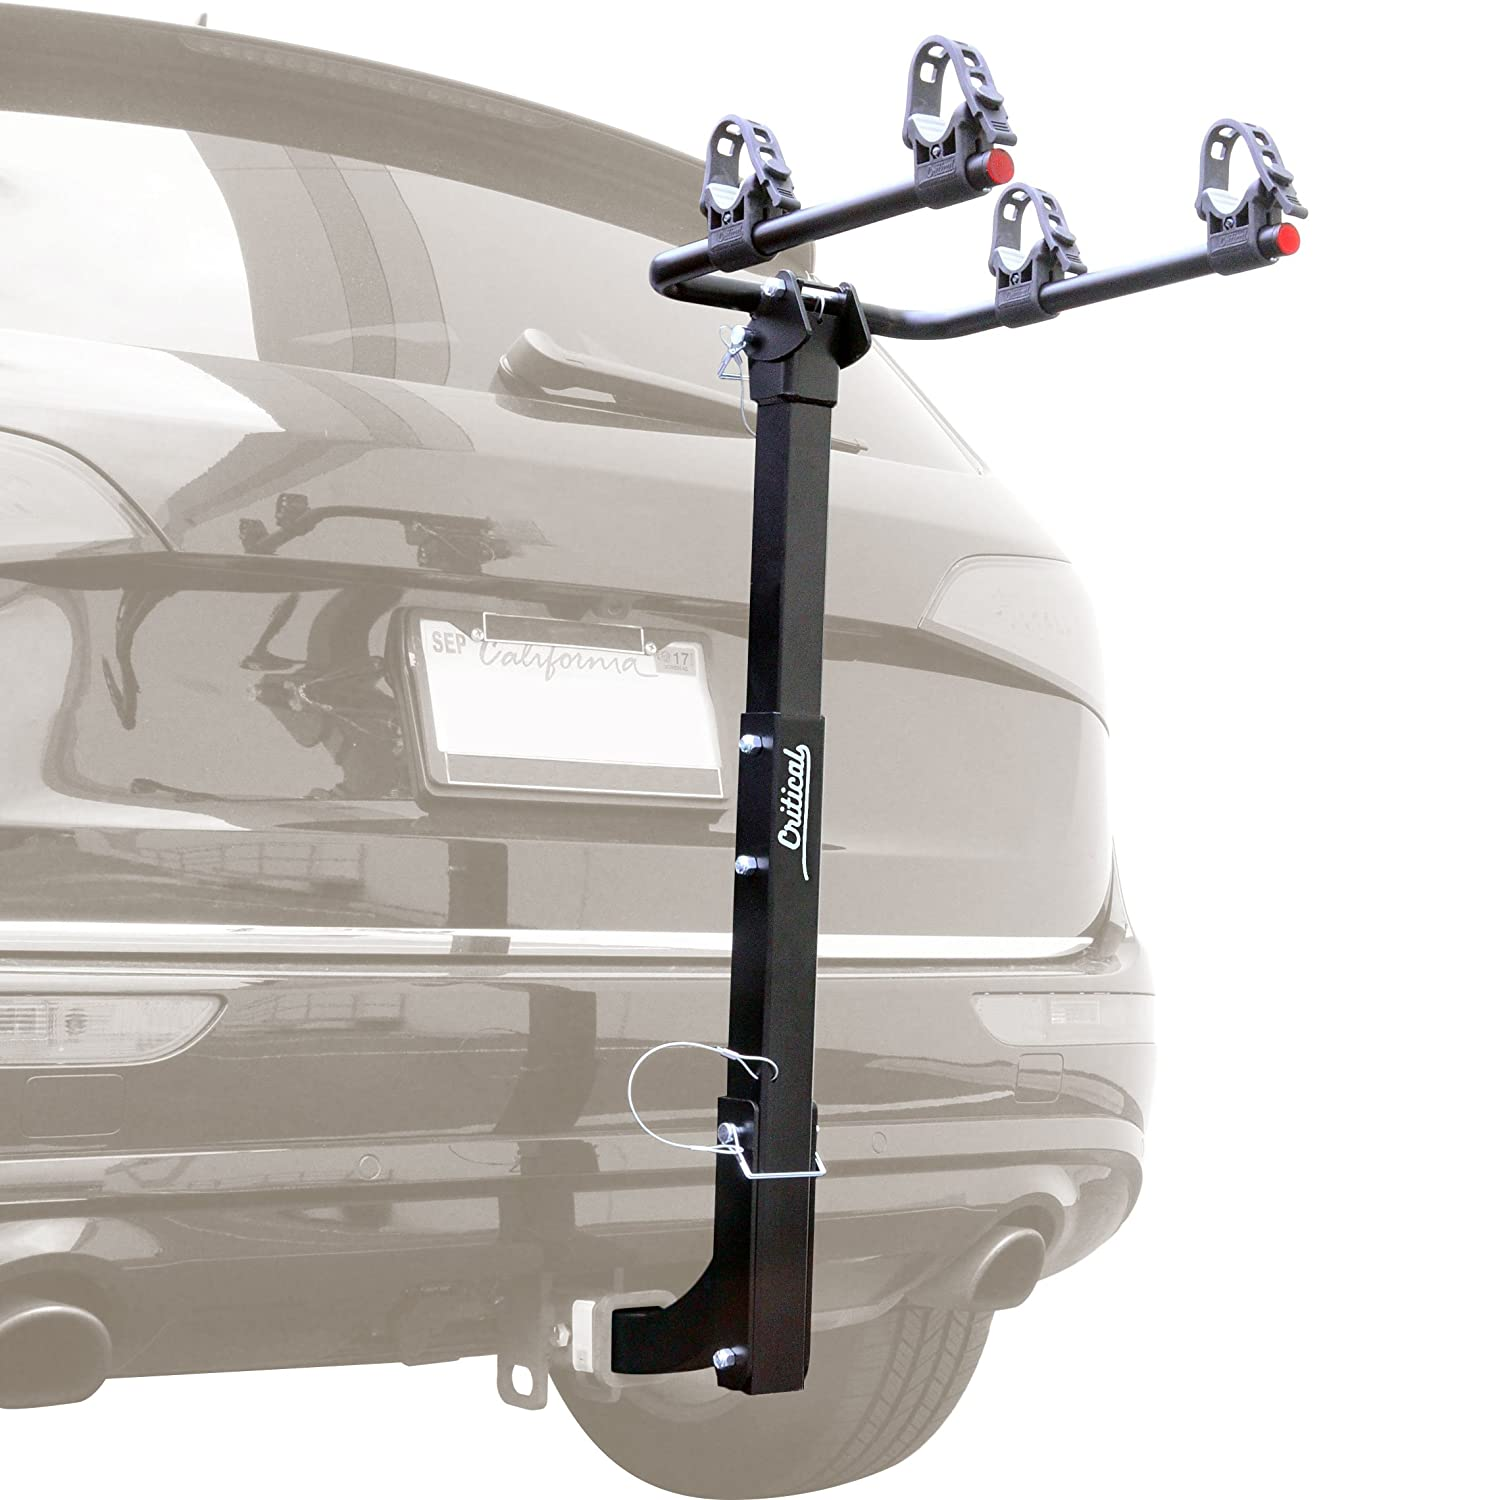 for car sports carrier stand outdoor mount rack bicycle leisure universal bike hatchback